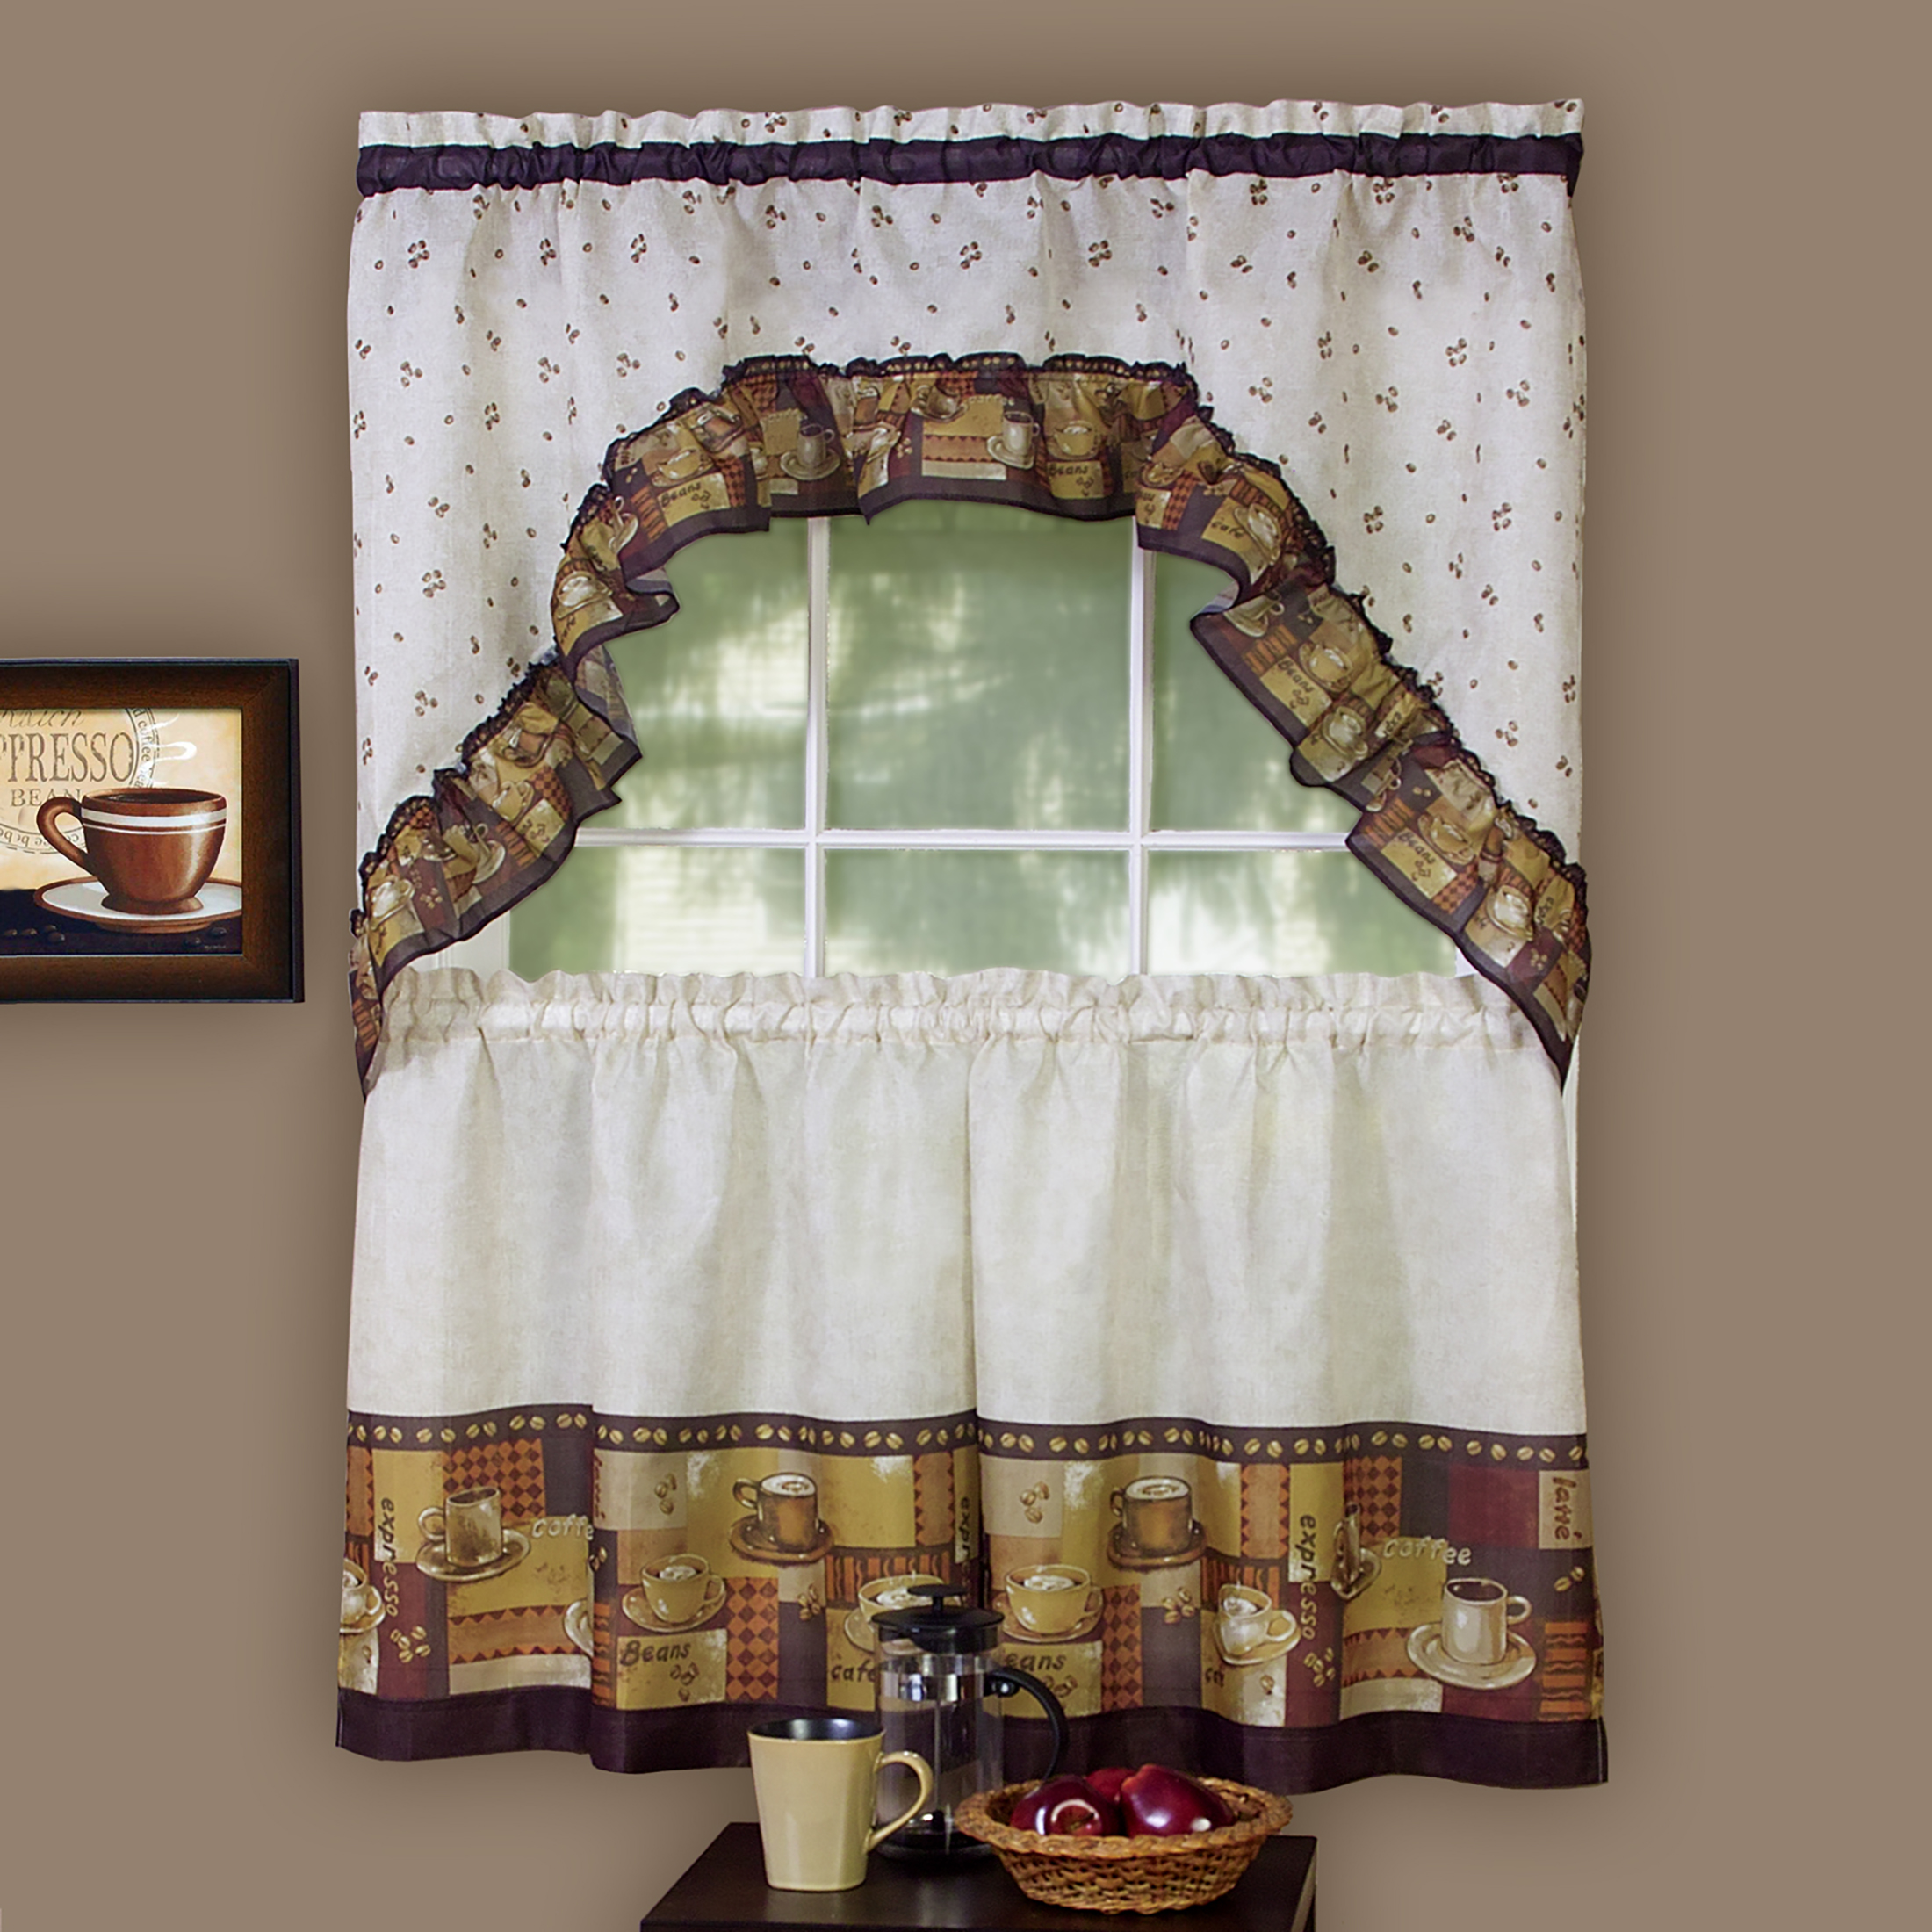 Details about 3-Piece Window Kitchen Curtain Set, Cafe and Latte, Tier Pair  Panels + Top Swag